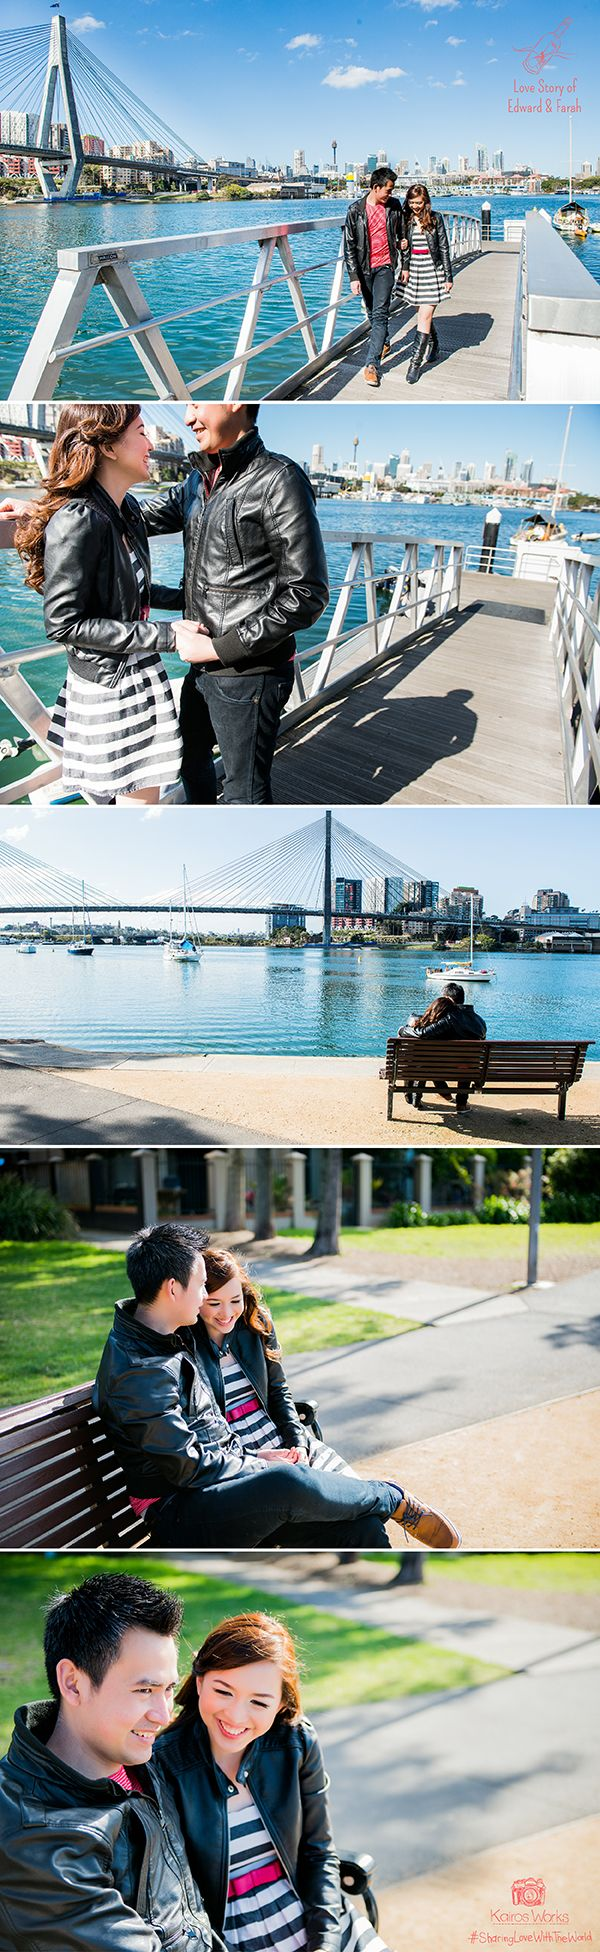 They chose to have the photo session in Sydney, the city where they met each other for the first time. She already has a specific list of the places in Sydney, from Milsons Point to Blackwattle bay and several other places. Each of 'em has special meanings in their hearts. When Artha asked, 'Who chose all this places?' of course they answered, 'We did!' at the exact same time.#SharingLoveWithTheWorld